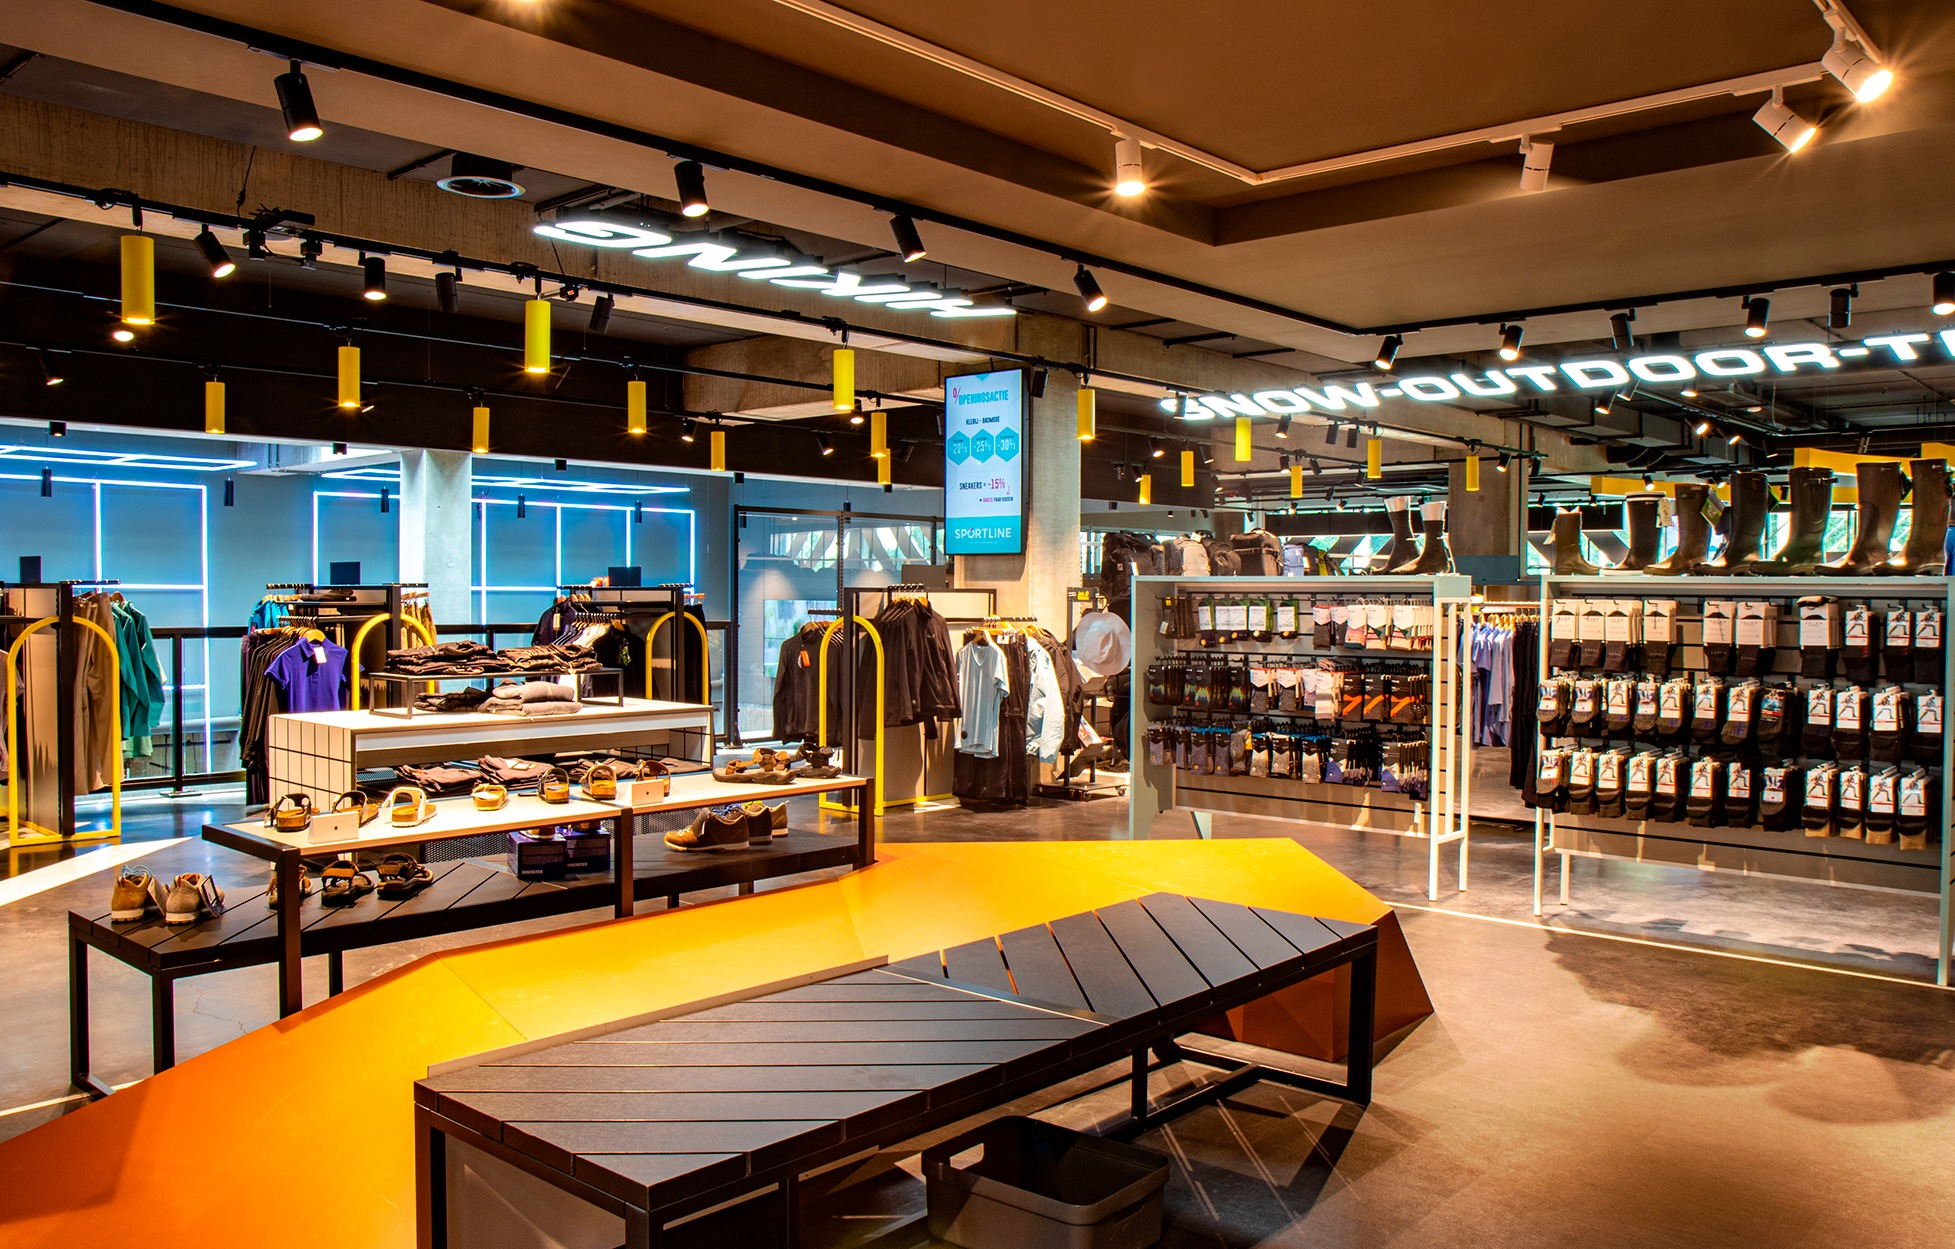 Lighting for the outdoor department of Sportline Roeselare.